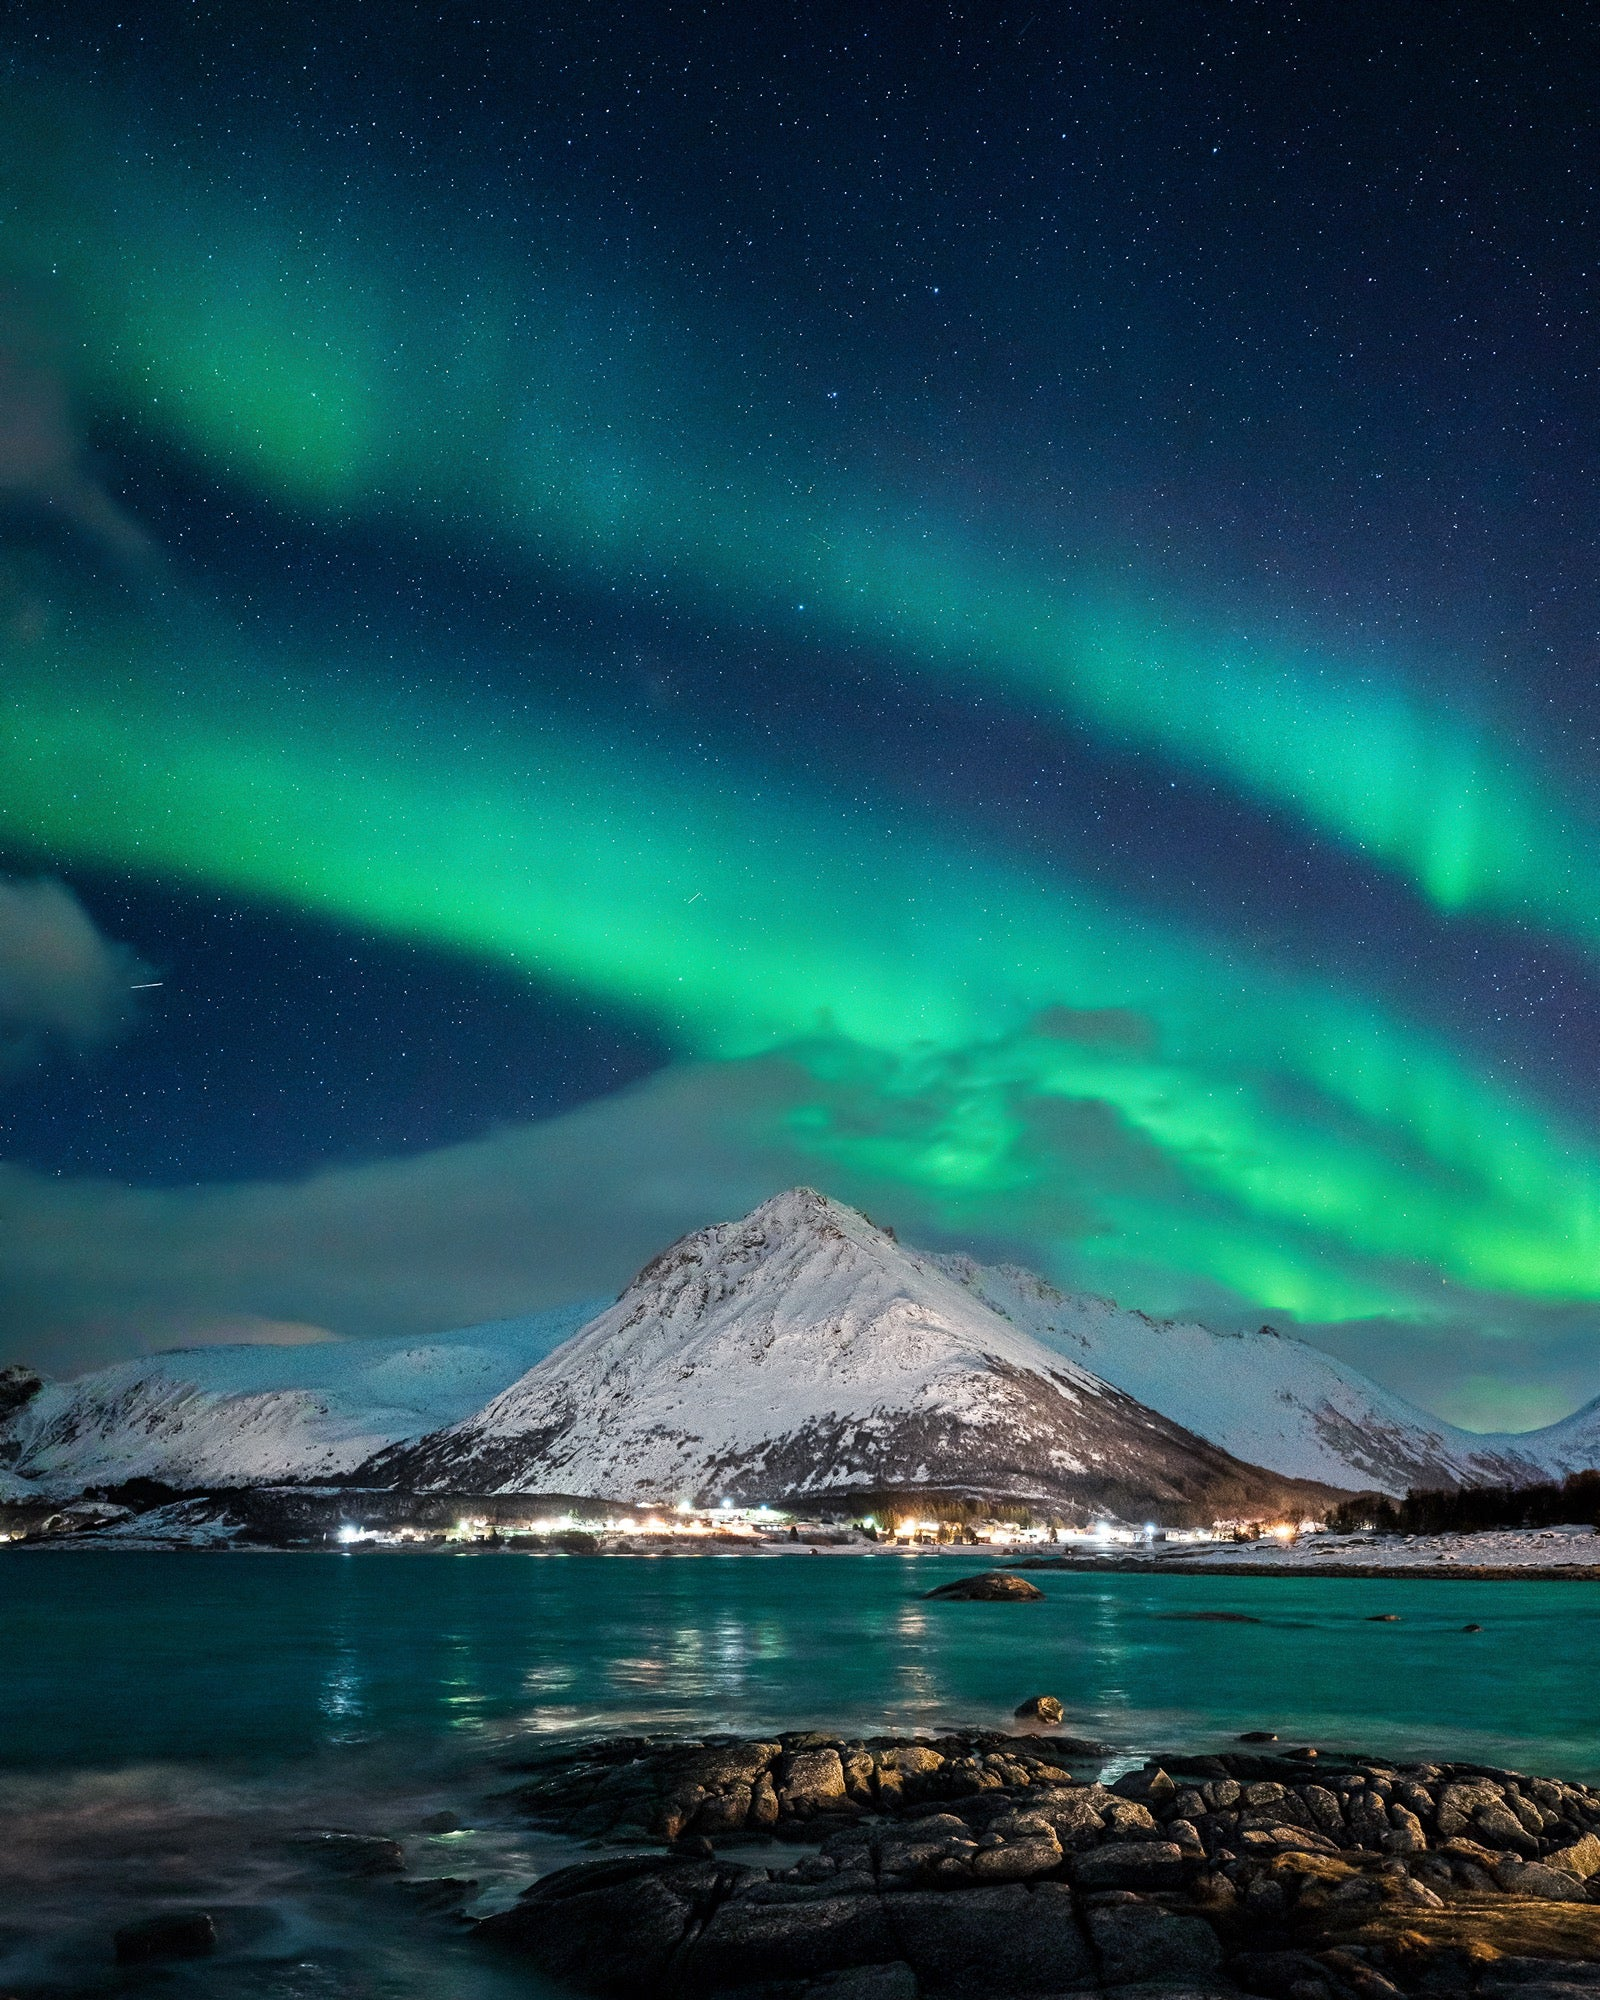 Alpha-Universe-Auroras-20mm-F18-G-photo-by-Autumn-Schrock-autumnschrock_aurora_portrait.jpg